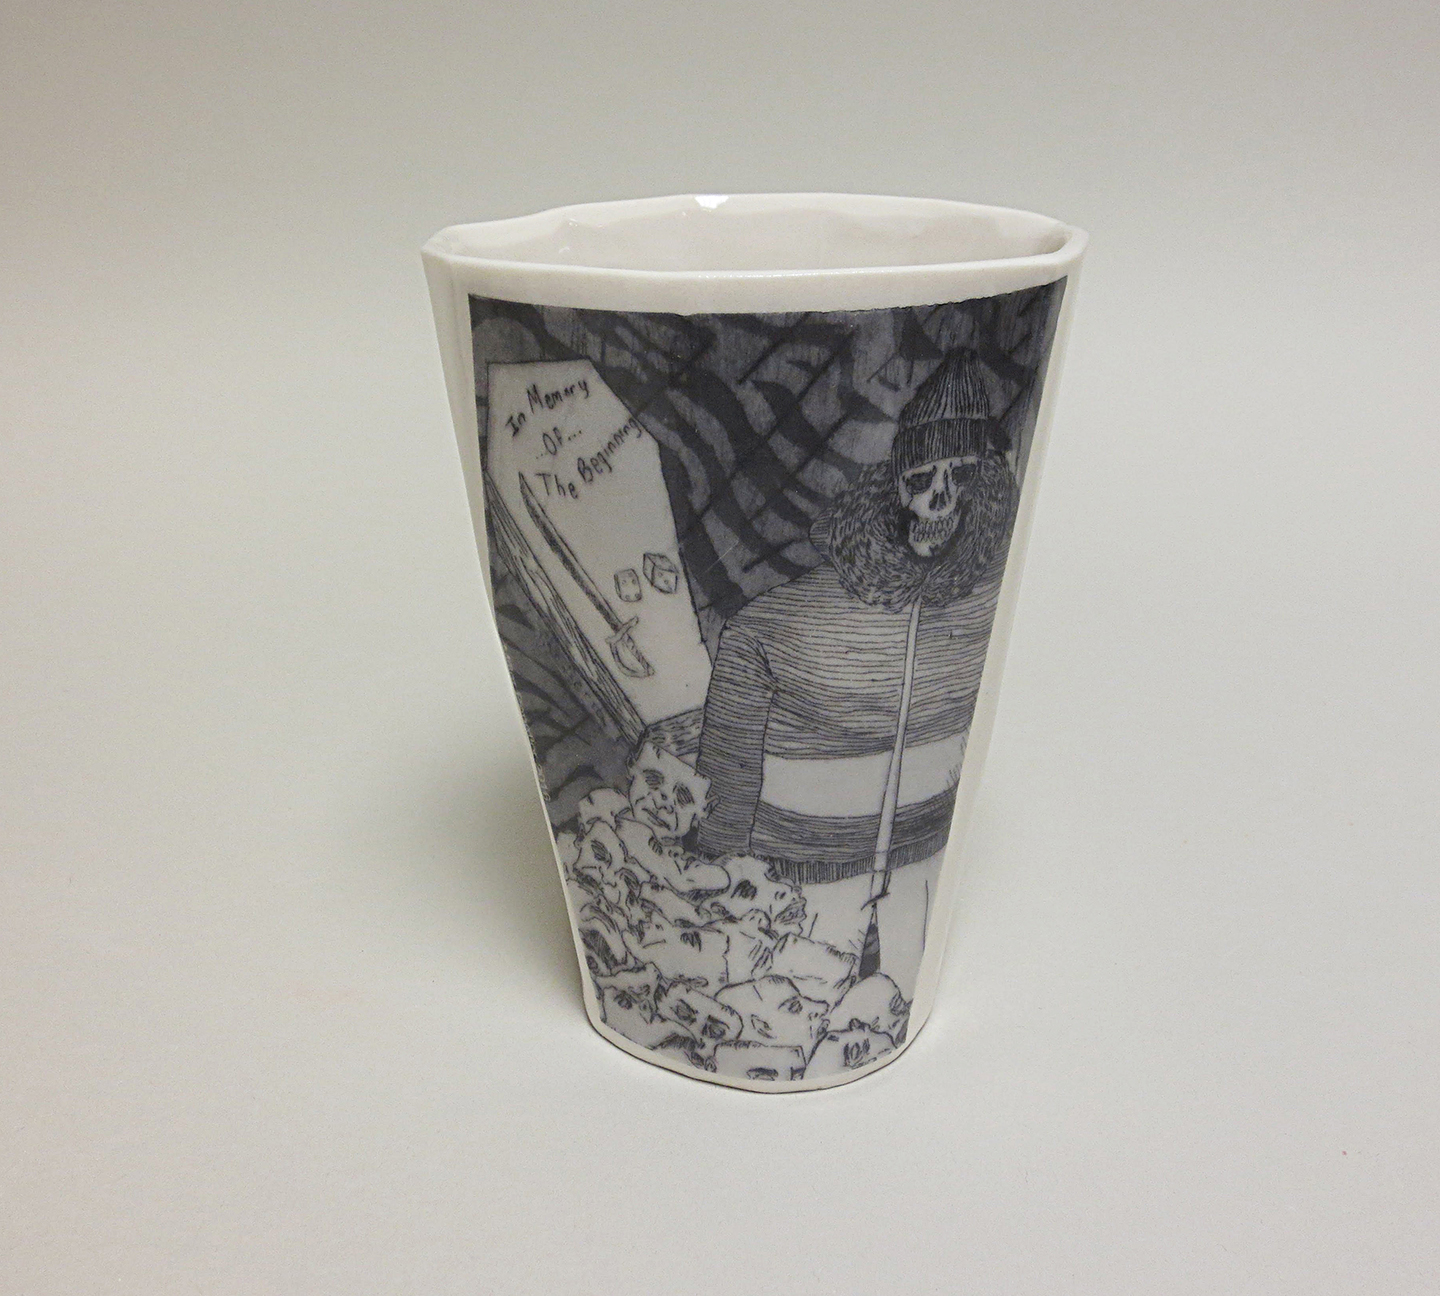 Collabo Cup 1st generation: Miller (front view)